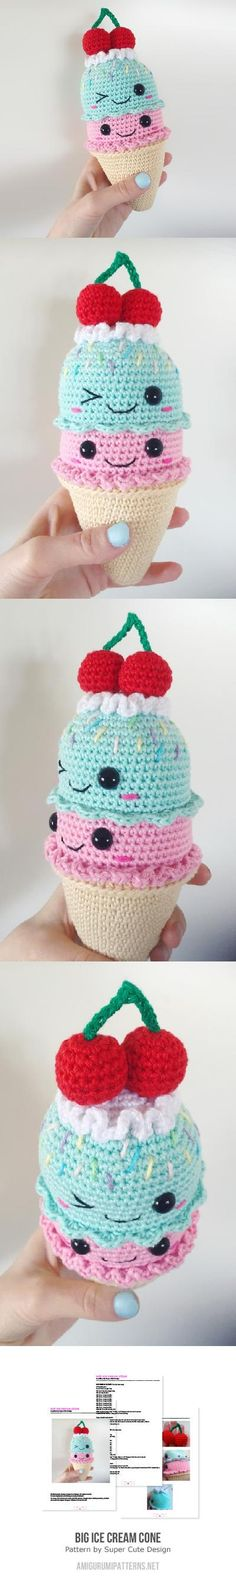 Big Ice Cream Cone Amigurumi Pattern